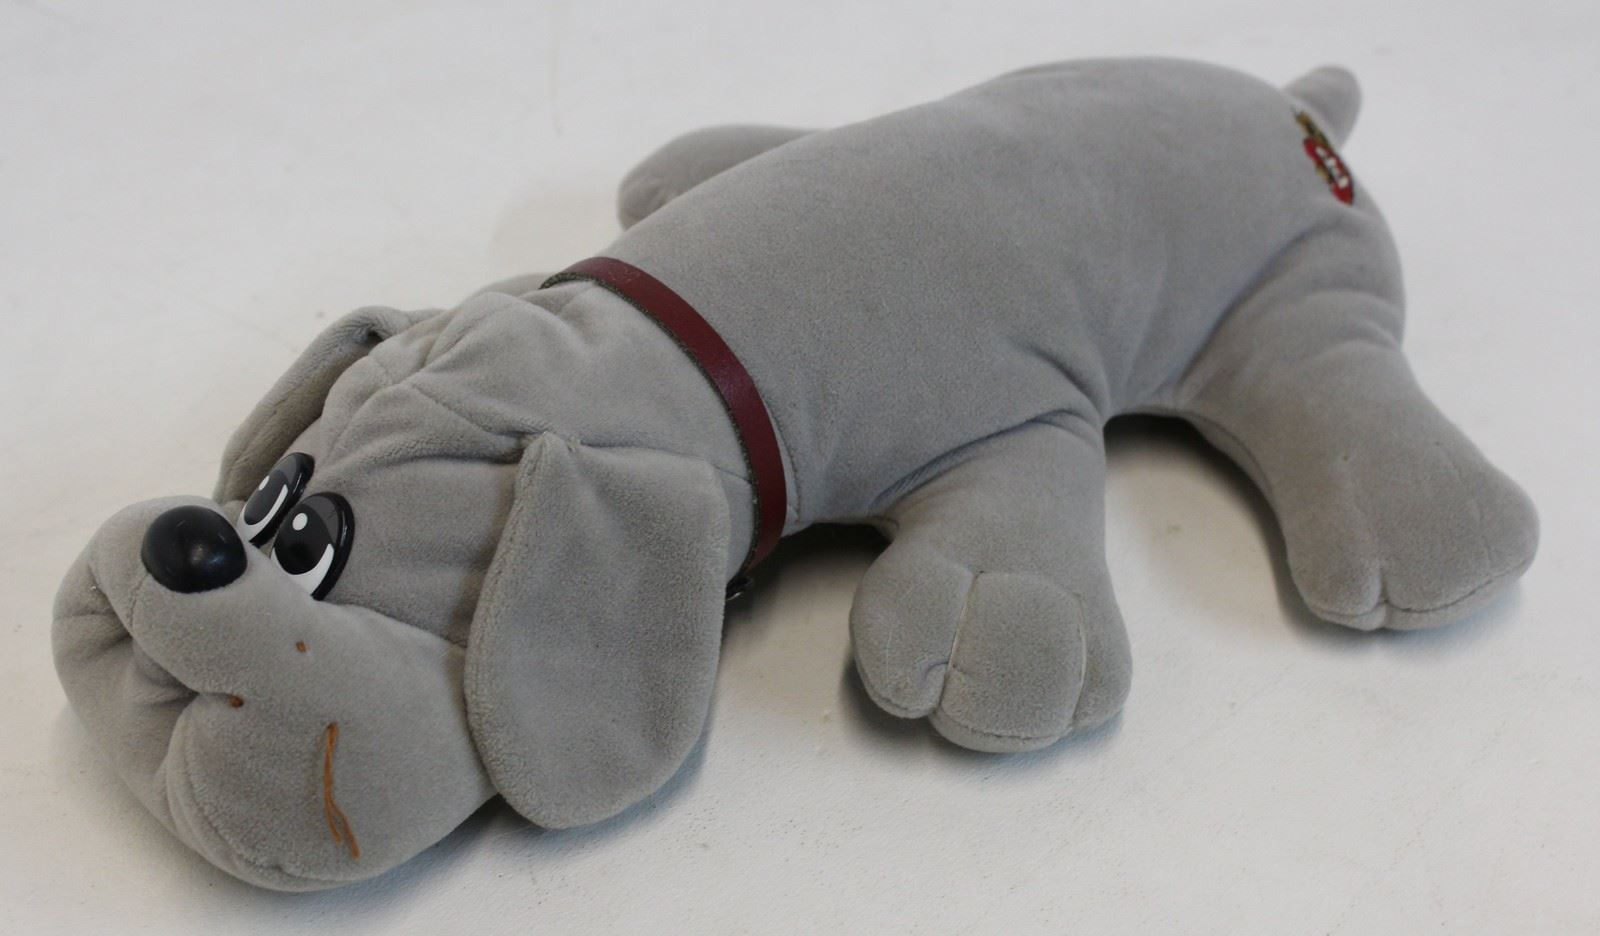 POUND PUPPY Vintage Teddy Bear Dog Rare Gray Collar 1980s Childs